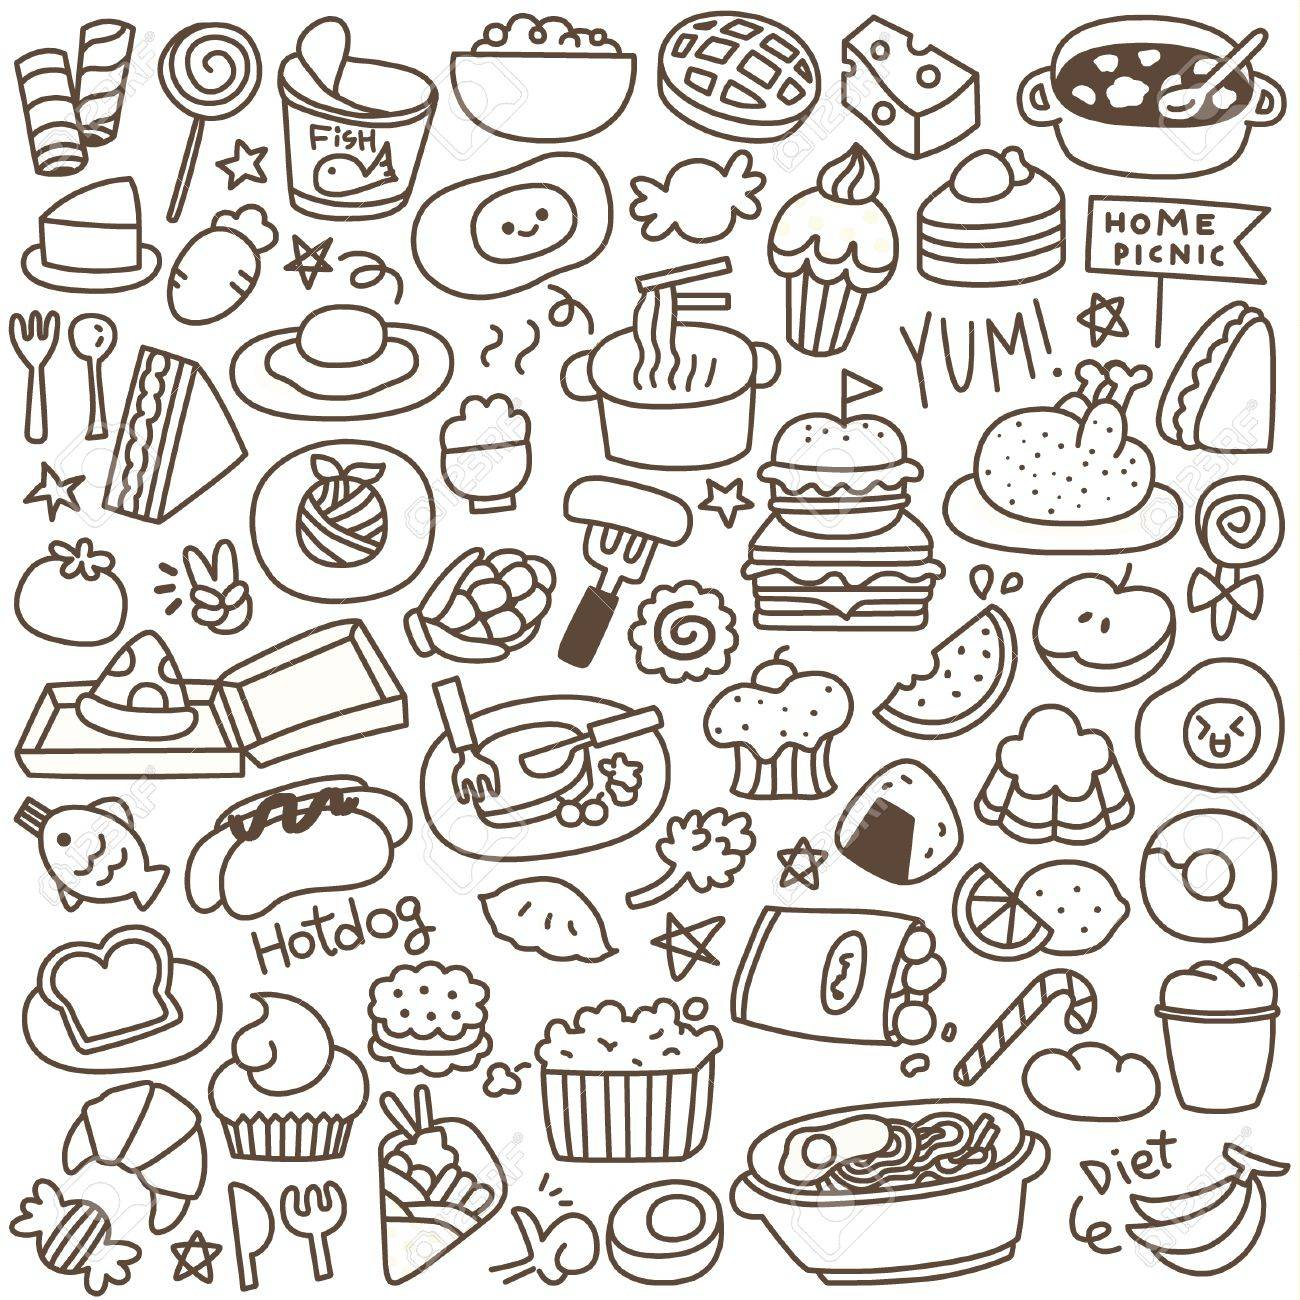 Set of cute food doodle black and white